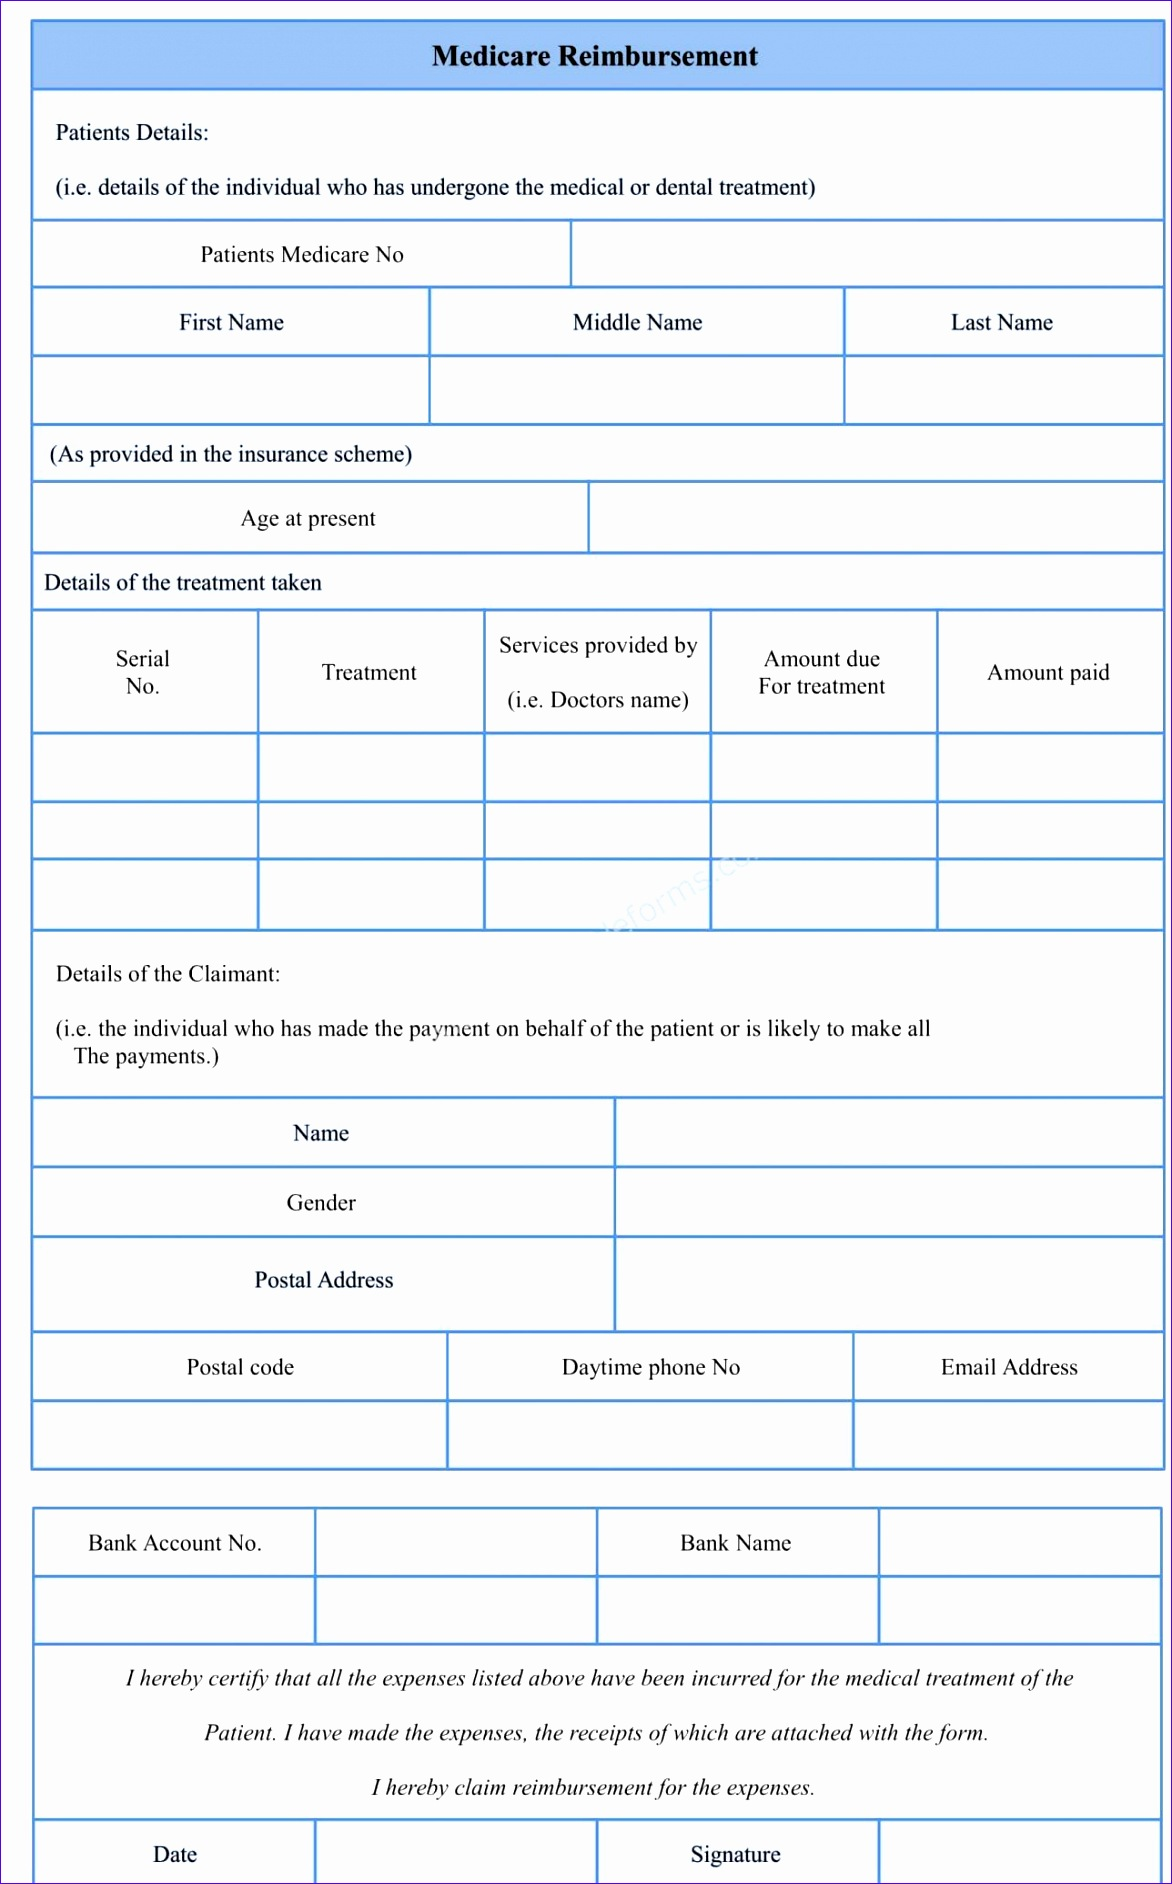 medicare reimburesement form sample